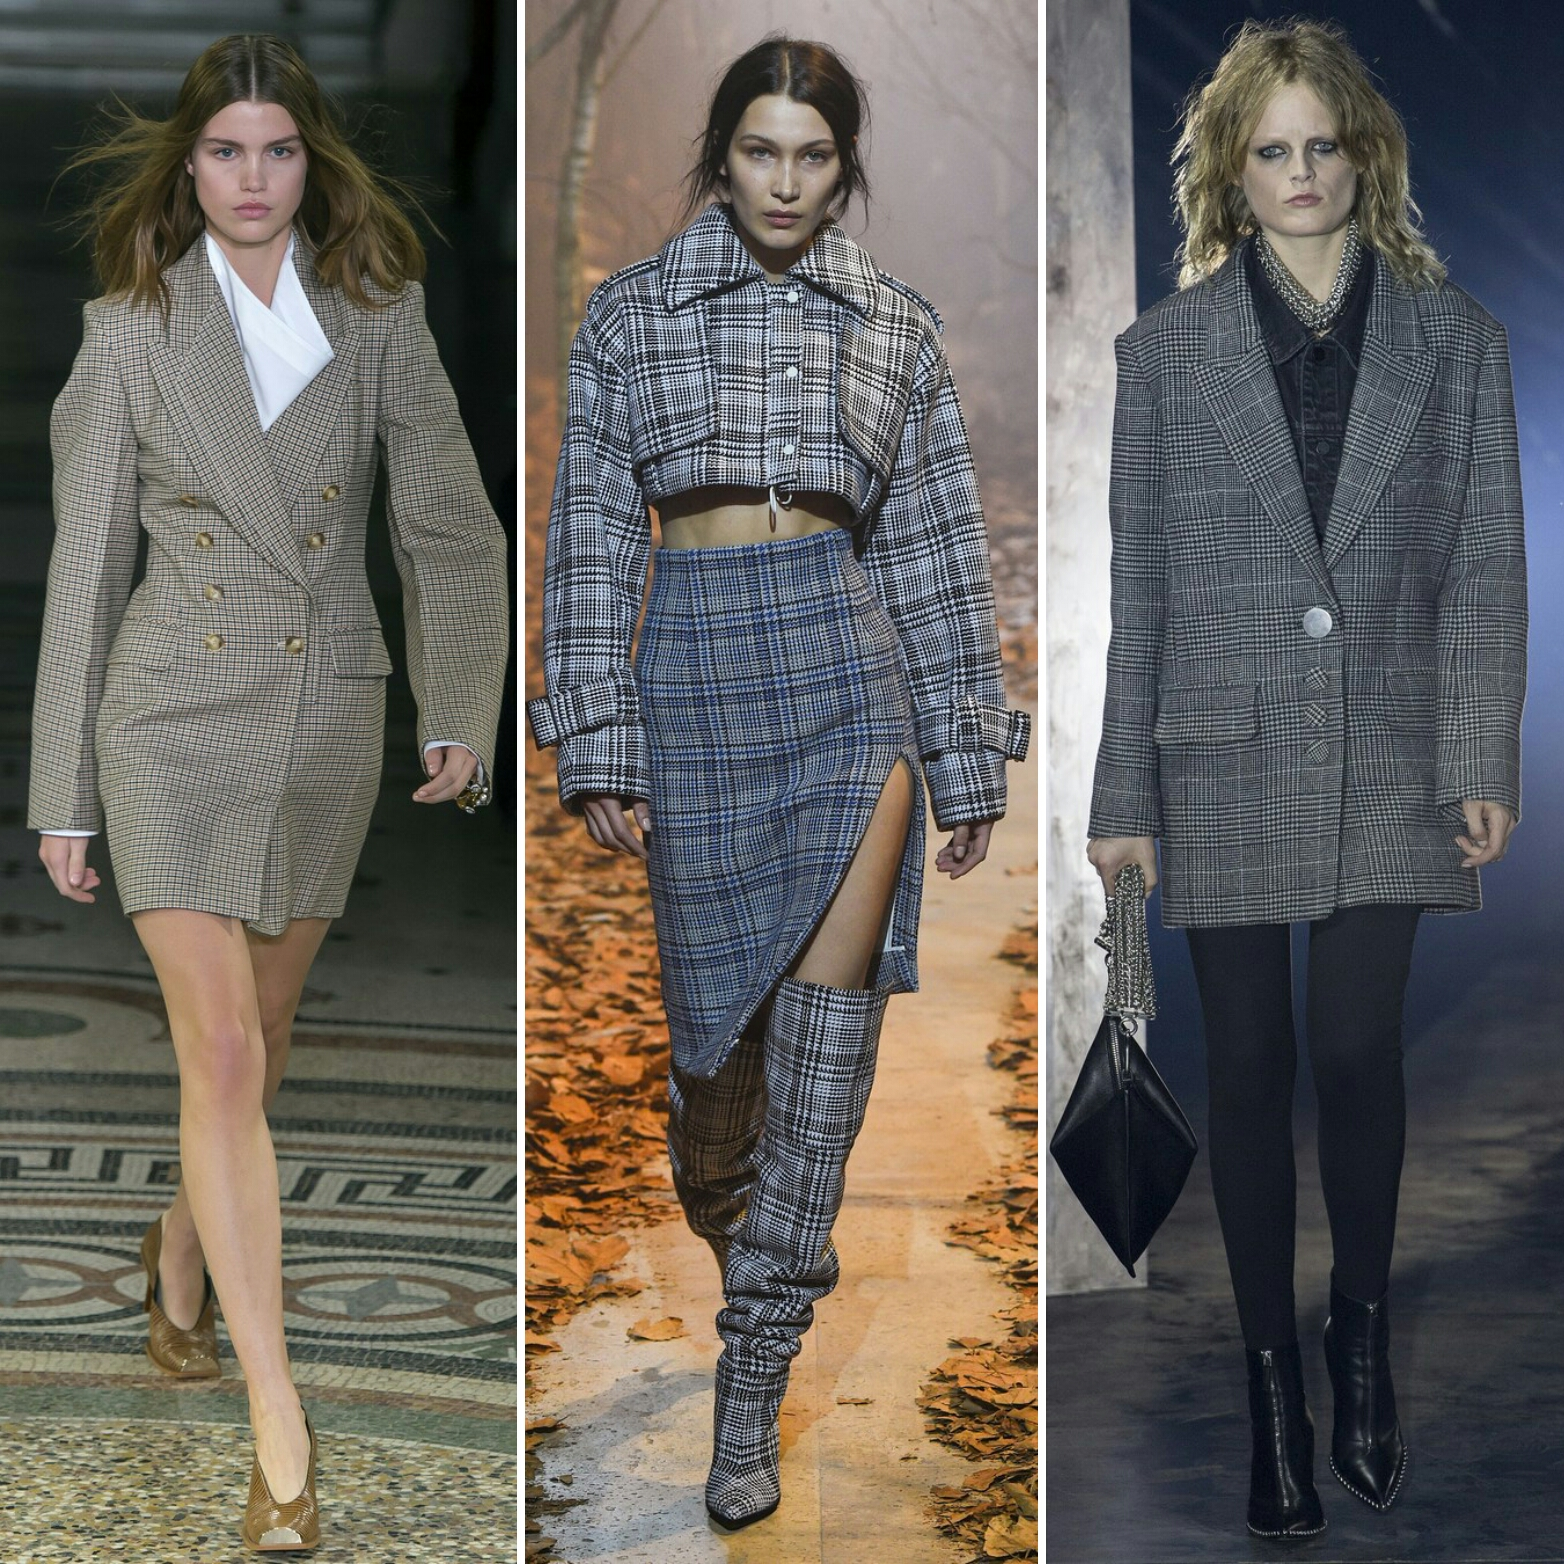 Plaid check blazers and coats